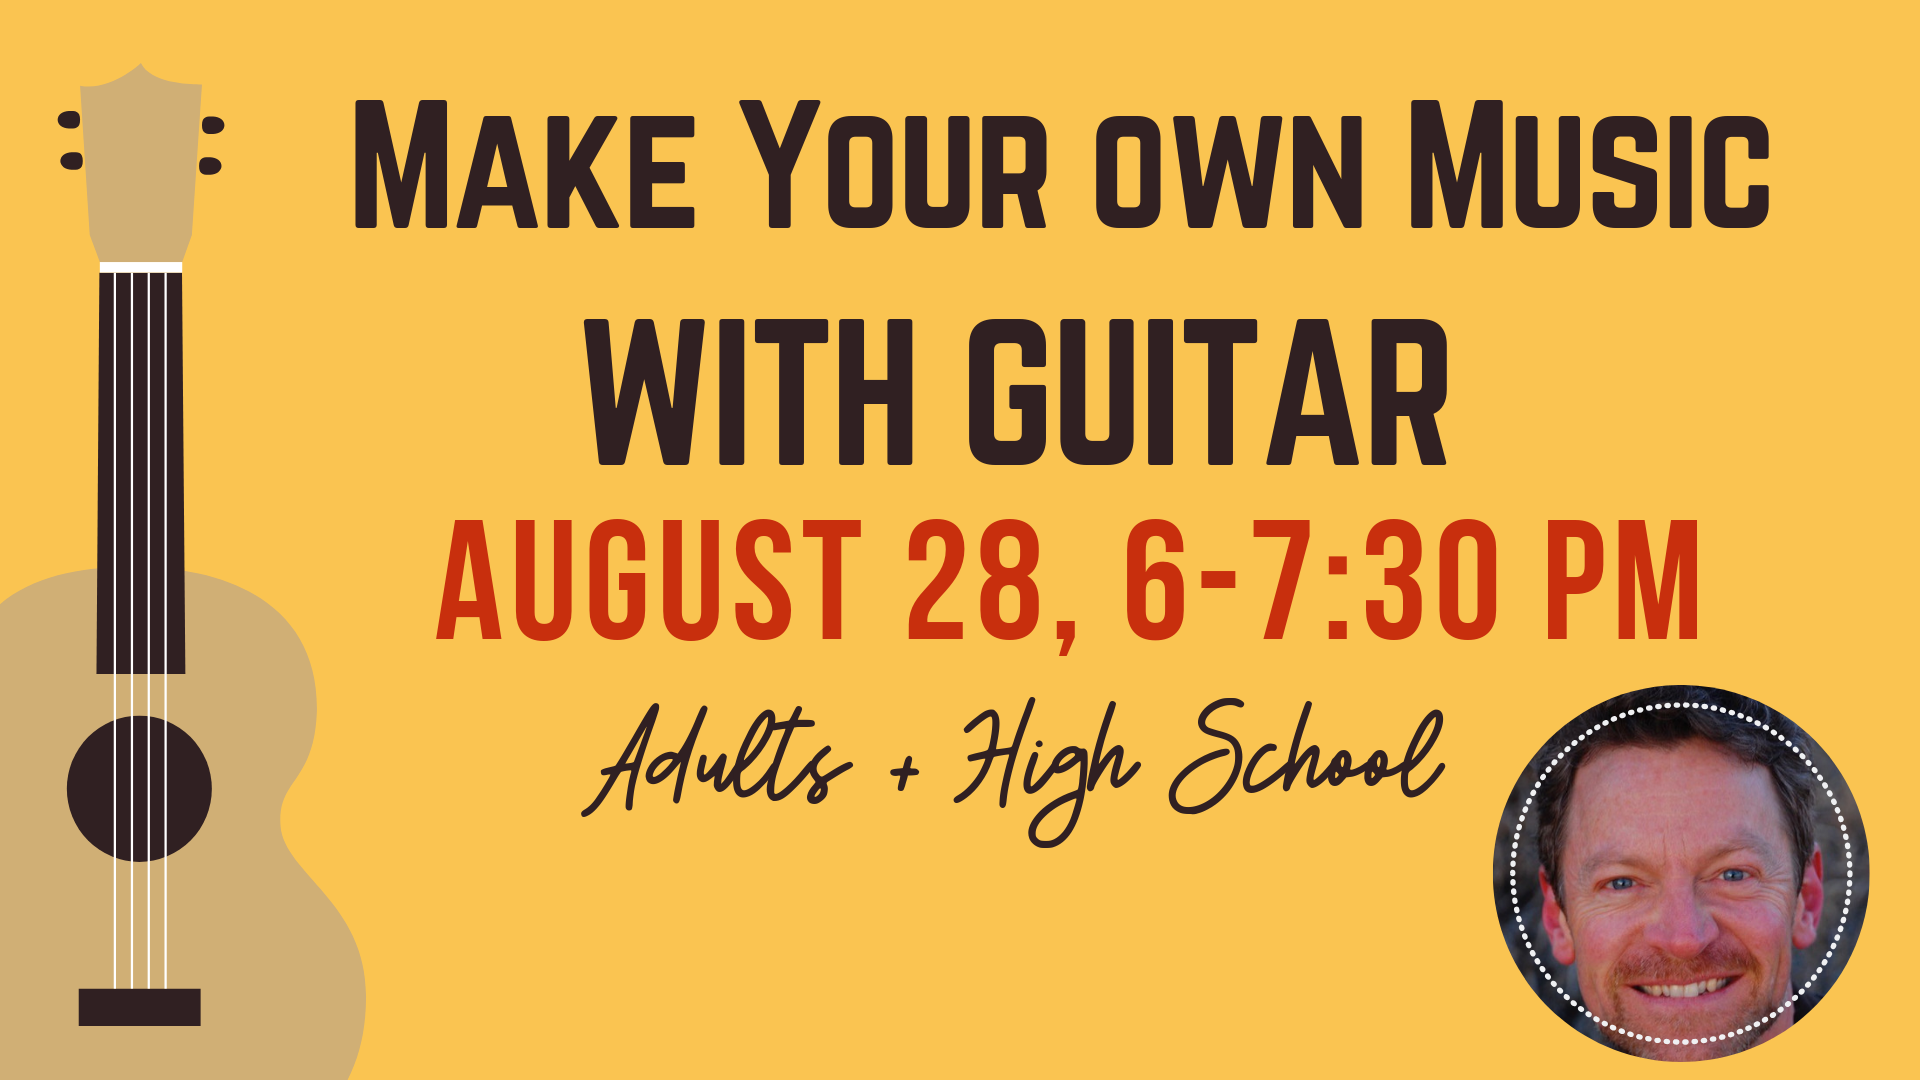 Make Your Own Music With Guitar